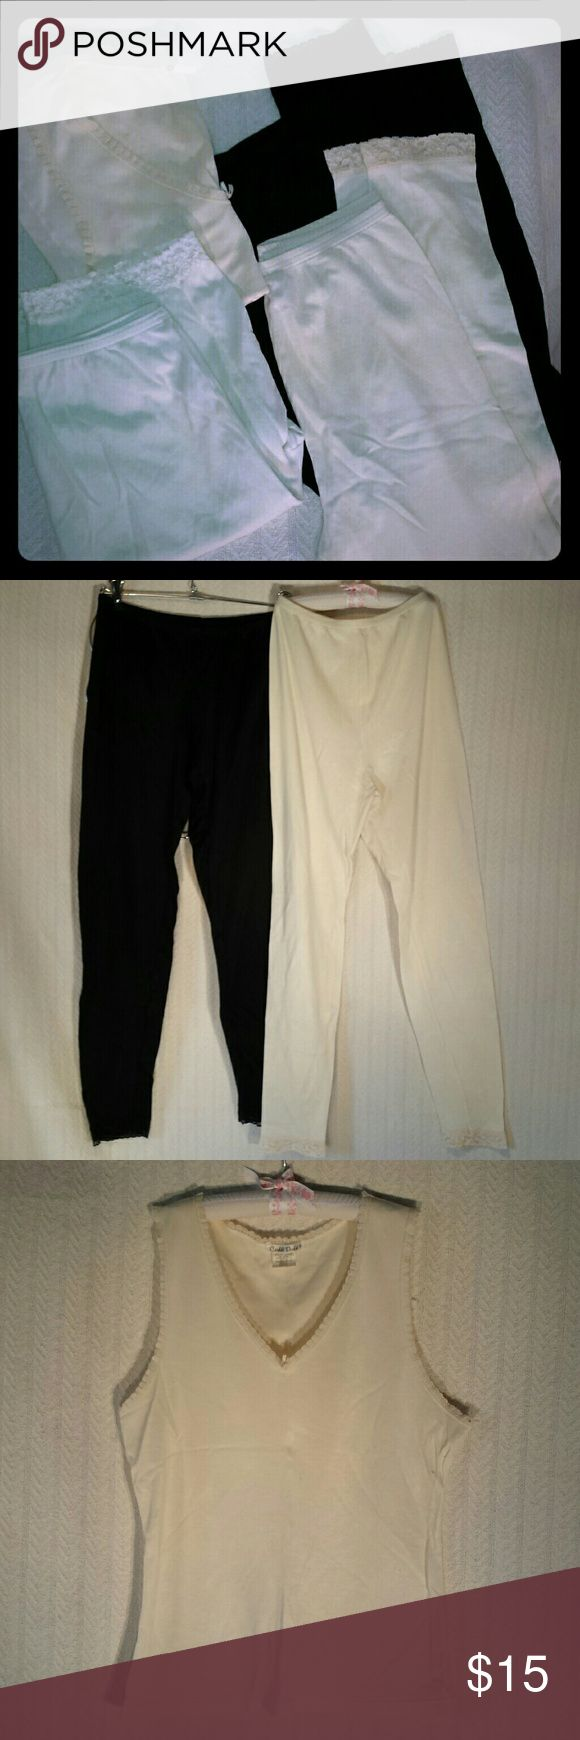 Cuddl Duds Bundle Four piece Cuddl Duds bundle.  Great for layering in cold weather.  Black leggings with lace cuff. 8 inch rise with 26 inch inseam.  55% nylon & 45% cotton.  Cream leggings with lace cuff.  11 inch rise with 26 inch inseam.  50% nylon & 50% cotton.  Minor pilling.  Cream tank top with ruffles and bow.  50% nylon & 50% cotton.  Minor pilling.  Cream shorts with lace cuff.11 inch rise with 9 nch inseam.  50% nylon & 50% cotton.  Minor pilling. Cuddl Duds Intimates & Sleepwear